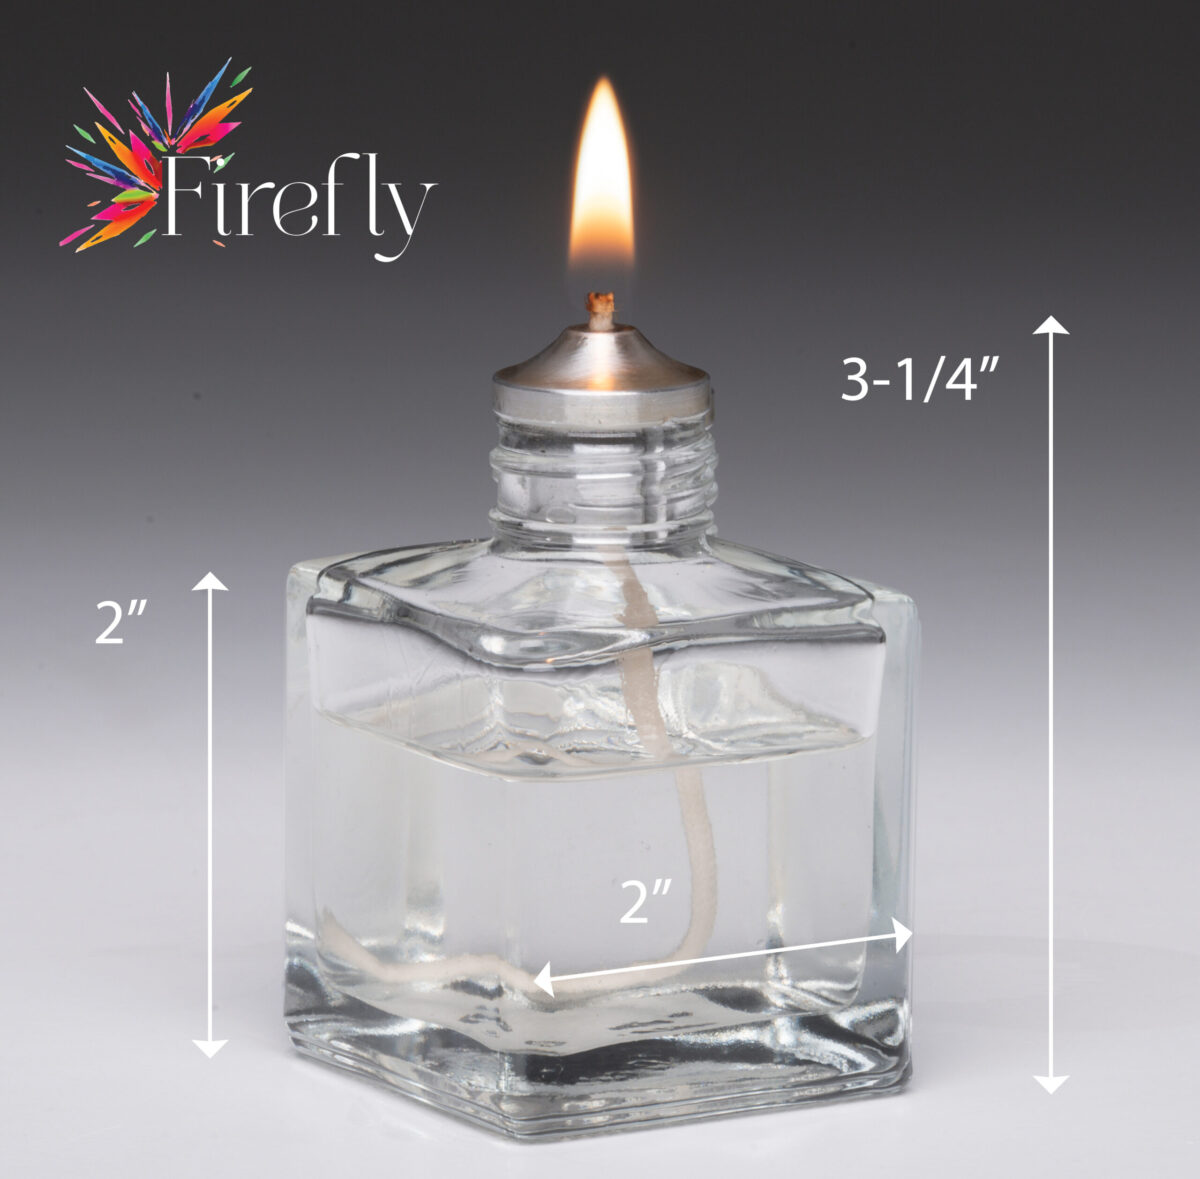 Firefly Aura Petite Refillable Glass Candle dimensions